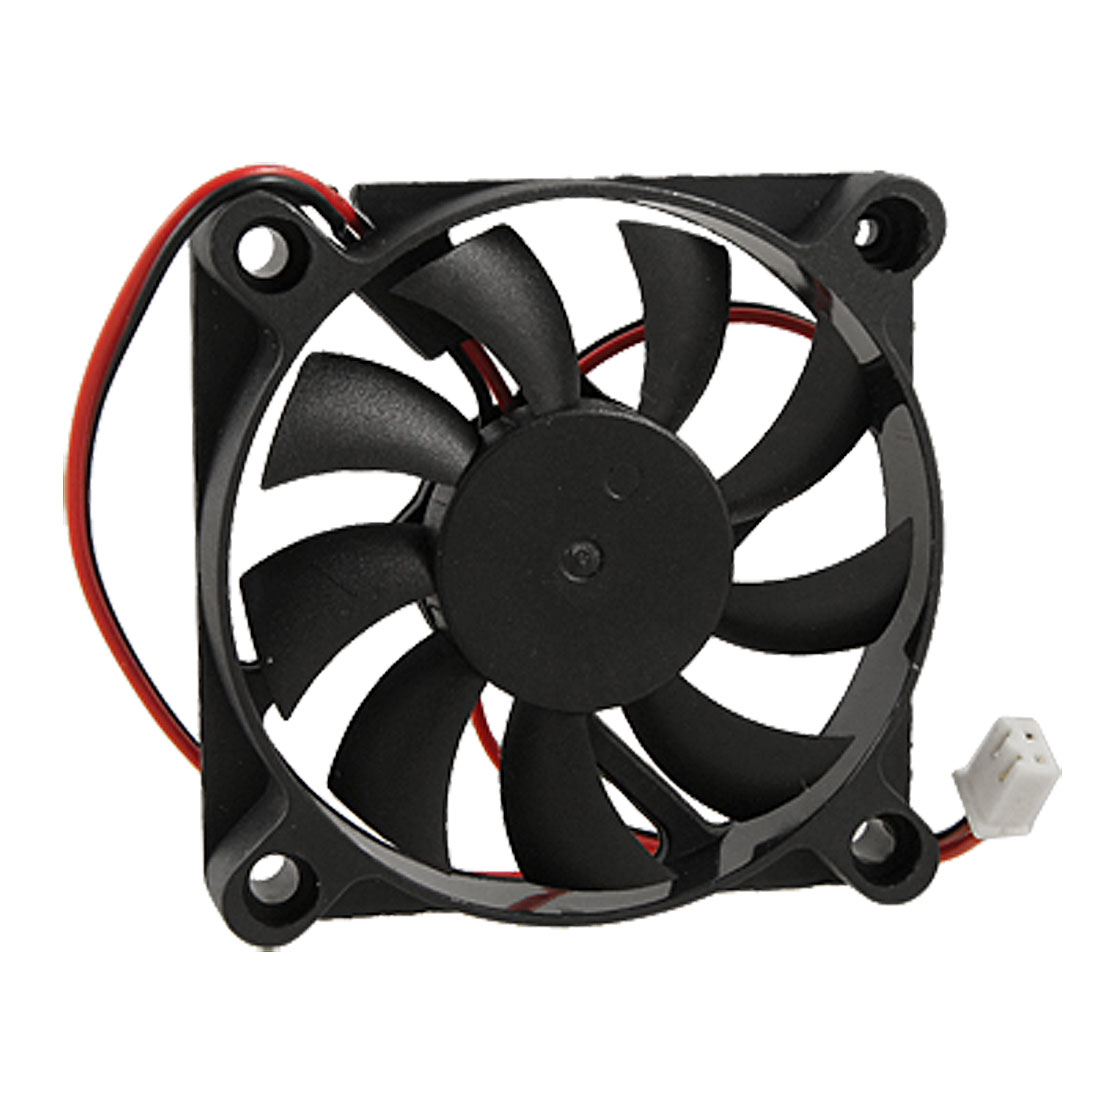 PROMOTION! Hot Desktop PC Case DC 12V 0.16A 60mm 2 Pin Cooler Cooling Fan gdstime 10 pcs dc 12v 14025 pc case cooling fan 140mm x 25mm 14cm 2 wire 2pin connector computer 140x140x25mm